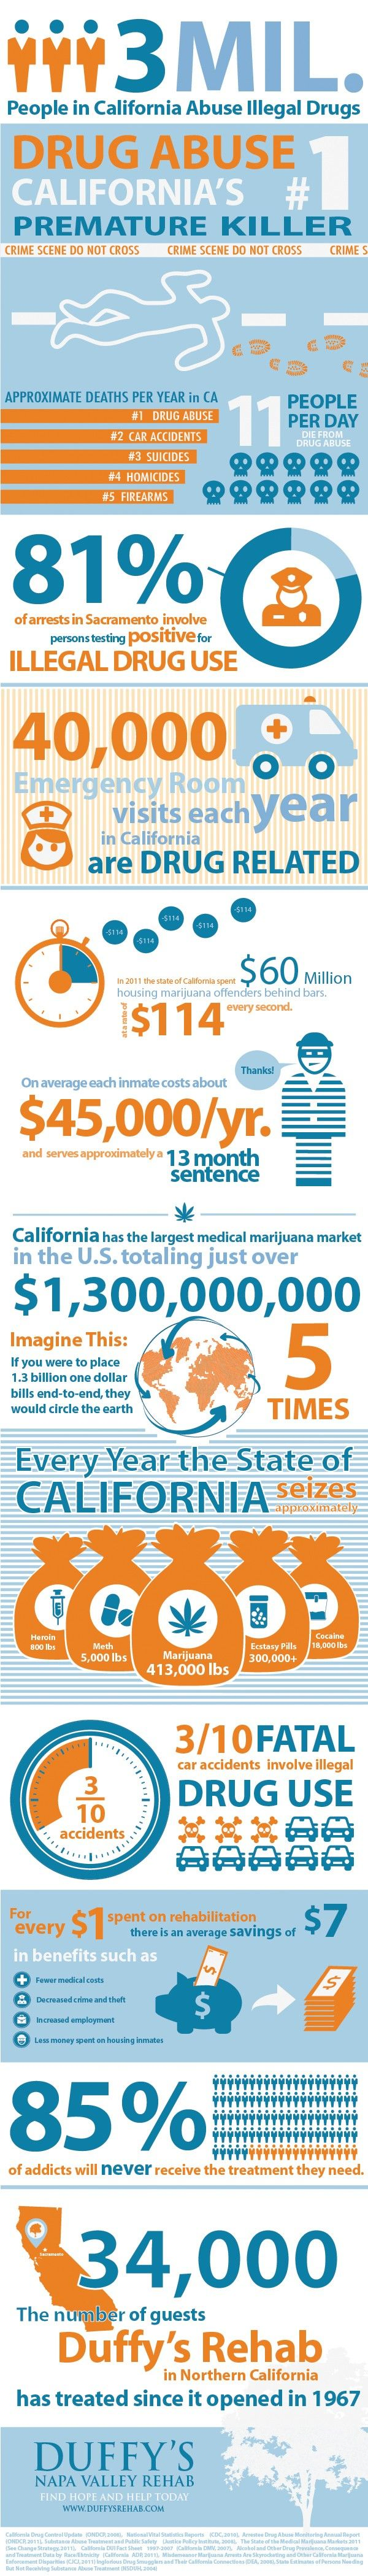 Drug Abuse Statistics in California. This is a nation-wide problem! #recovery #infographic www.NewBeginningsDetox.com